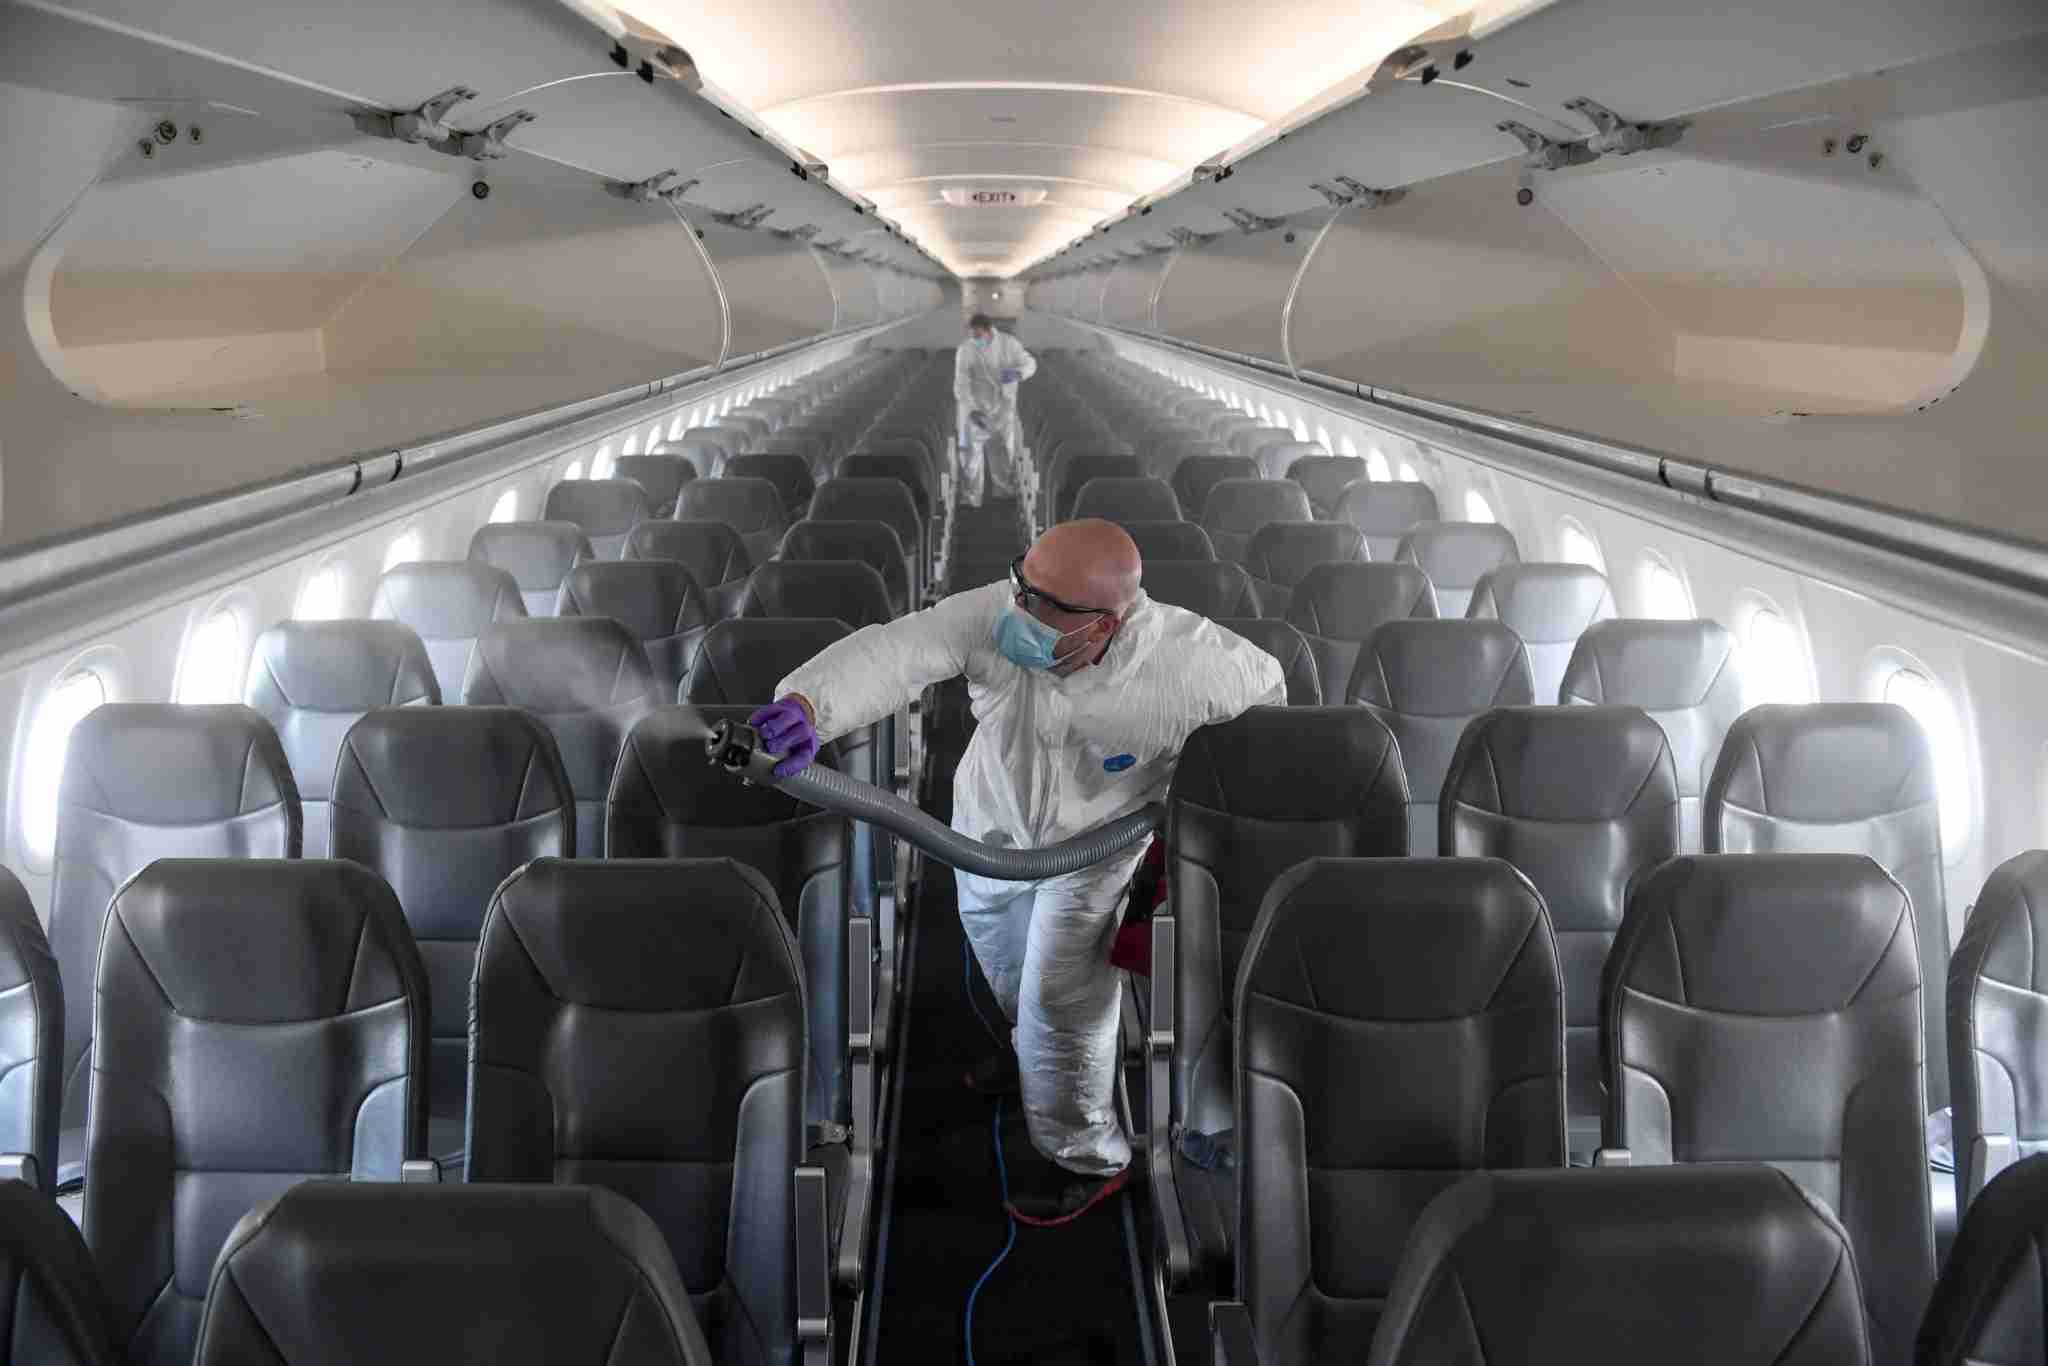 DENVER, CO - MAY 6: Brandon Wilson, owner of AvidJet, disinfects a Frontier airplane with a fogger at Denver International Airport on Tuesday, May 6, 2020. ProShield, the microbiostatic agent used to disinfect the plane, will keep the aircraft clean for up to 90 days after application. Beginning this week, Frontier will require the use of masks by passengers and will implement temperature checks in the coming weeks. (Photo by AAron Ontiveroz/MediaNews Group/The Denver Post via Getty Images)